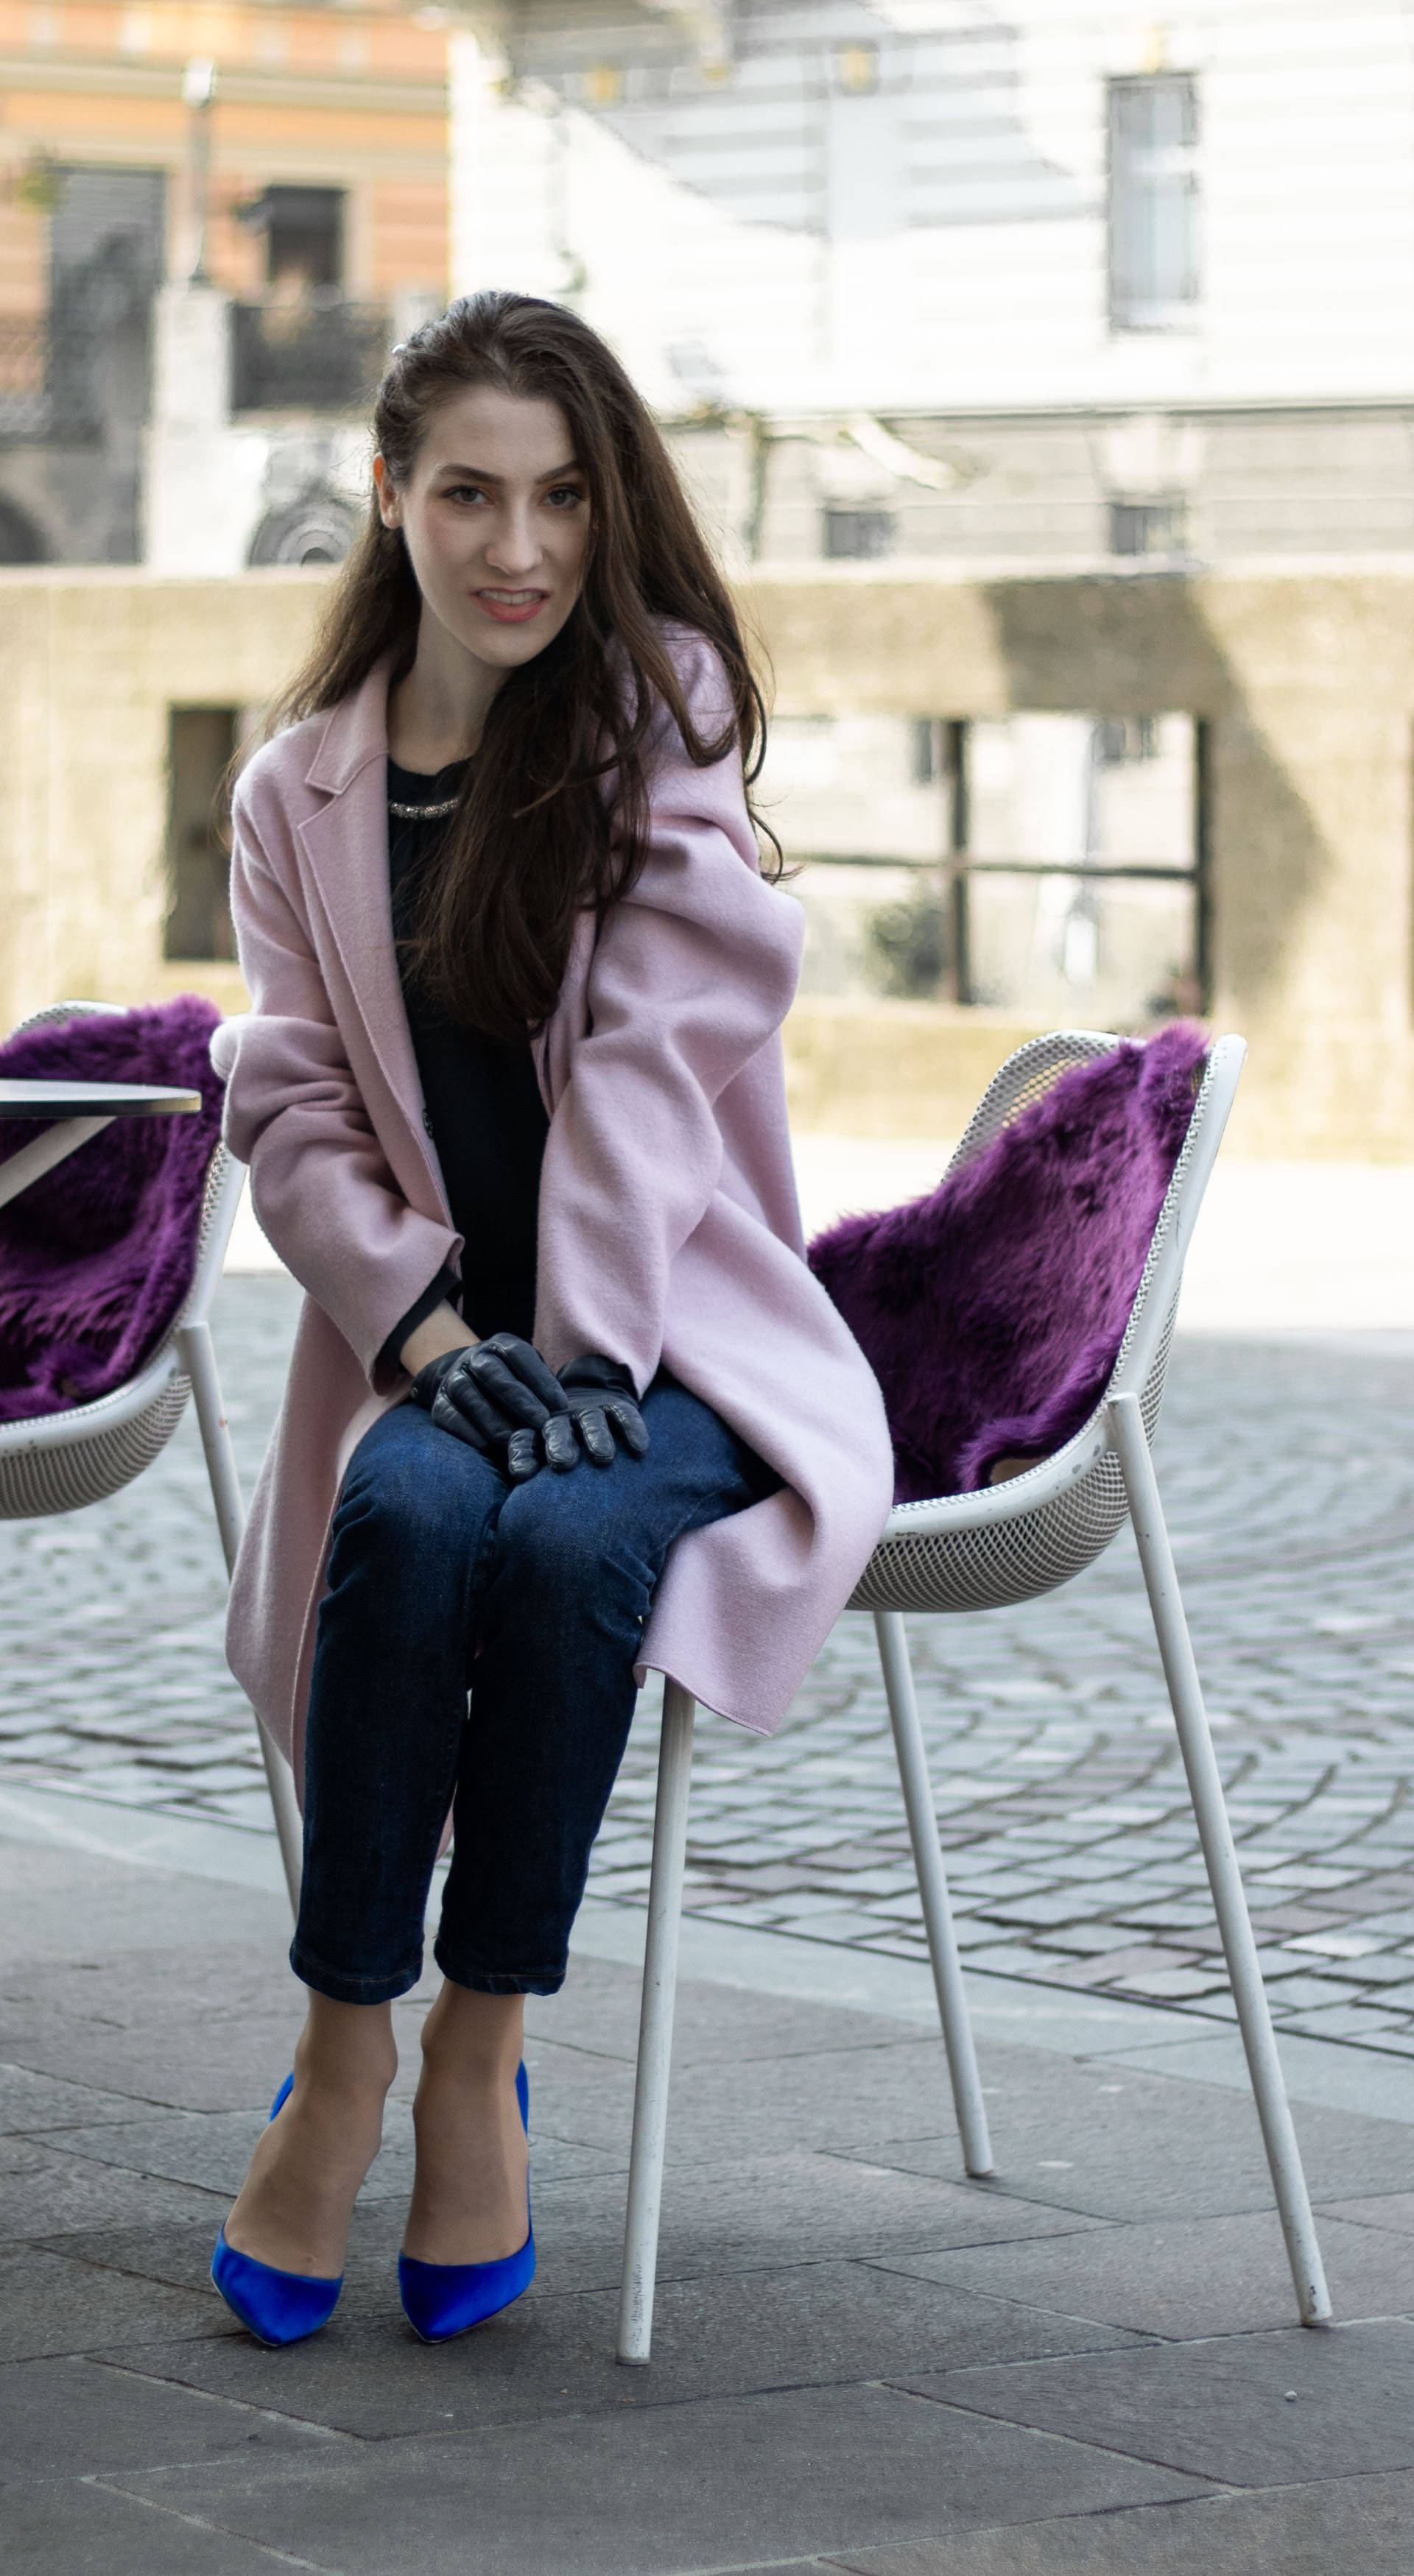 Must follow Fashion Blogger Veronika Lipar of Brunette from Wall Street dressed in oversize pink Harris Wharf London coat A.P.C. Paris dark blue denim jeans Gianvito Rossi blue court shoes black top handle bag Forzieri blue leather gloves pearl hairpin sitting on the street